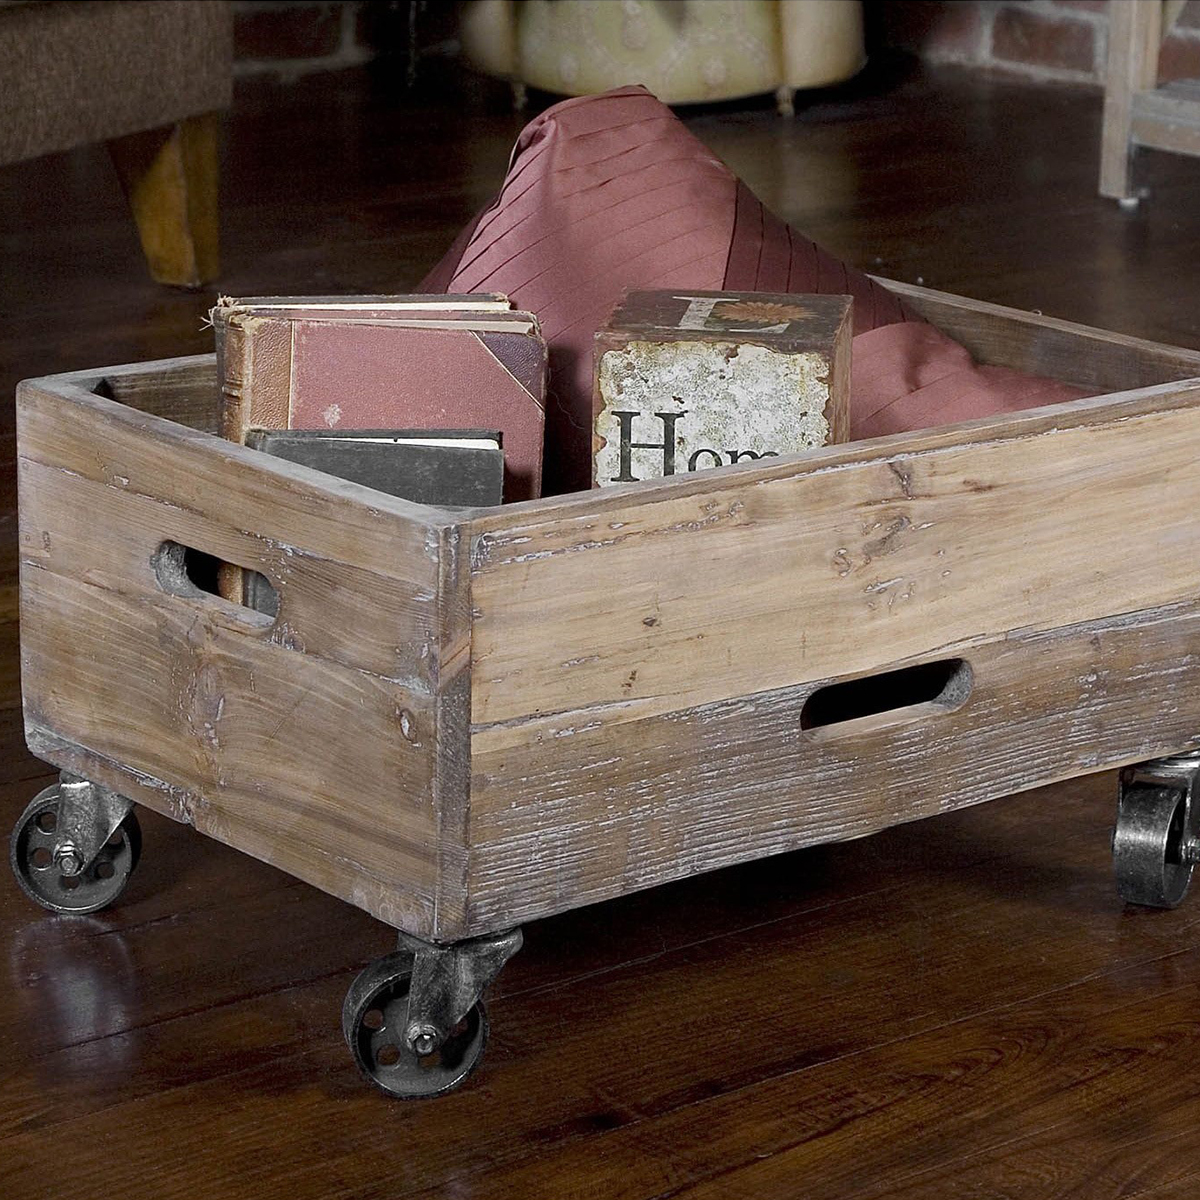 Crate on wheels made of reclaimed wood photo